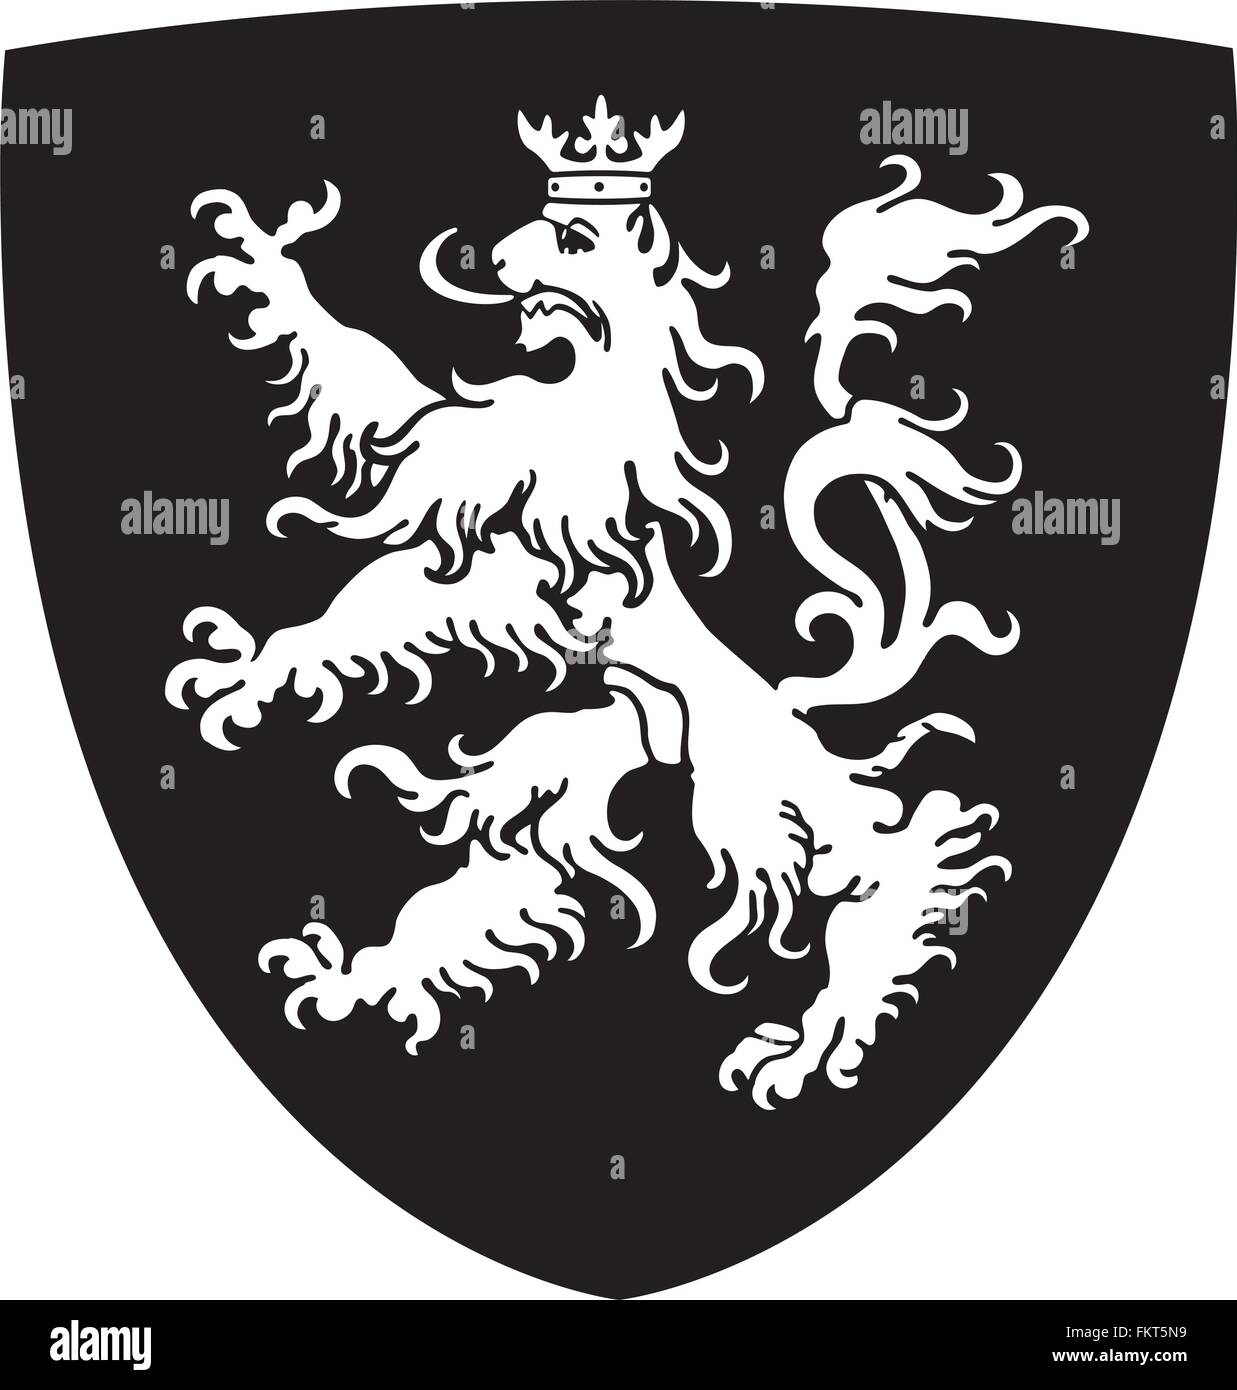 Coat of arms with lion on shield - Stock Vector